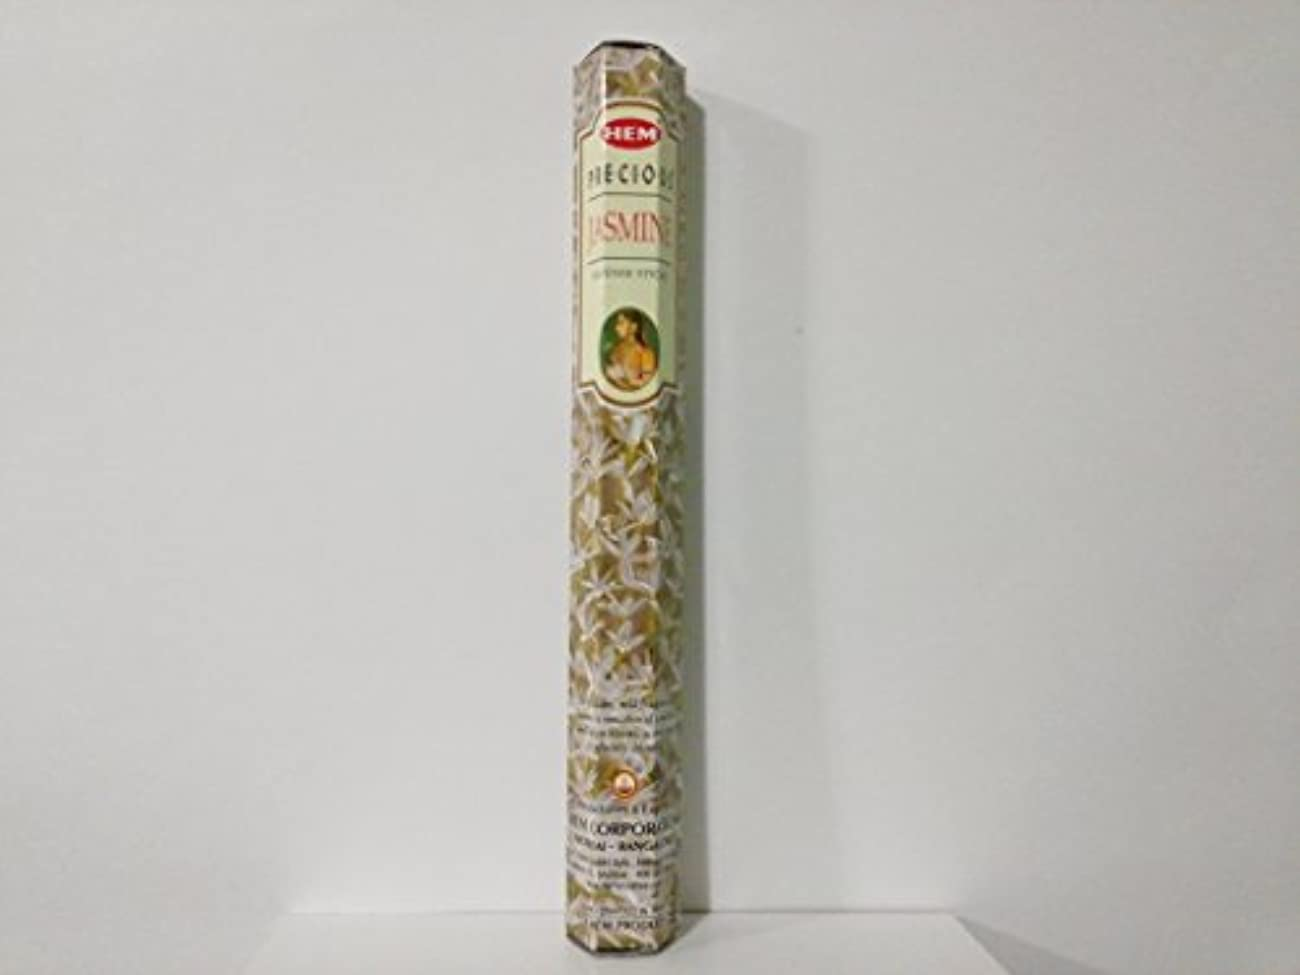 朝消毒剤レンダリング1 x Hem Precious Jasmine Incense Sticks 120 Ct